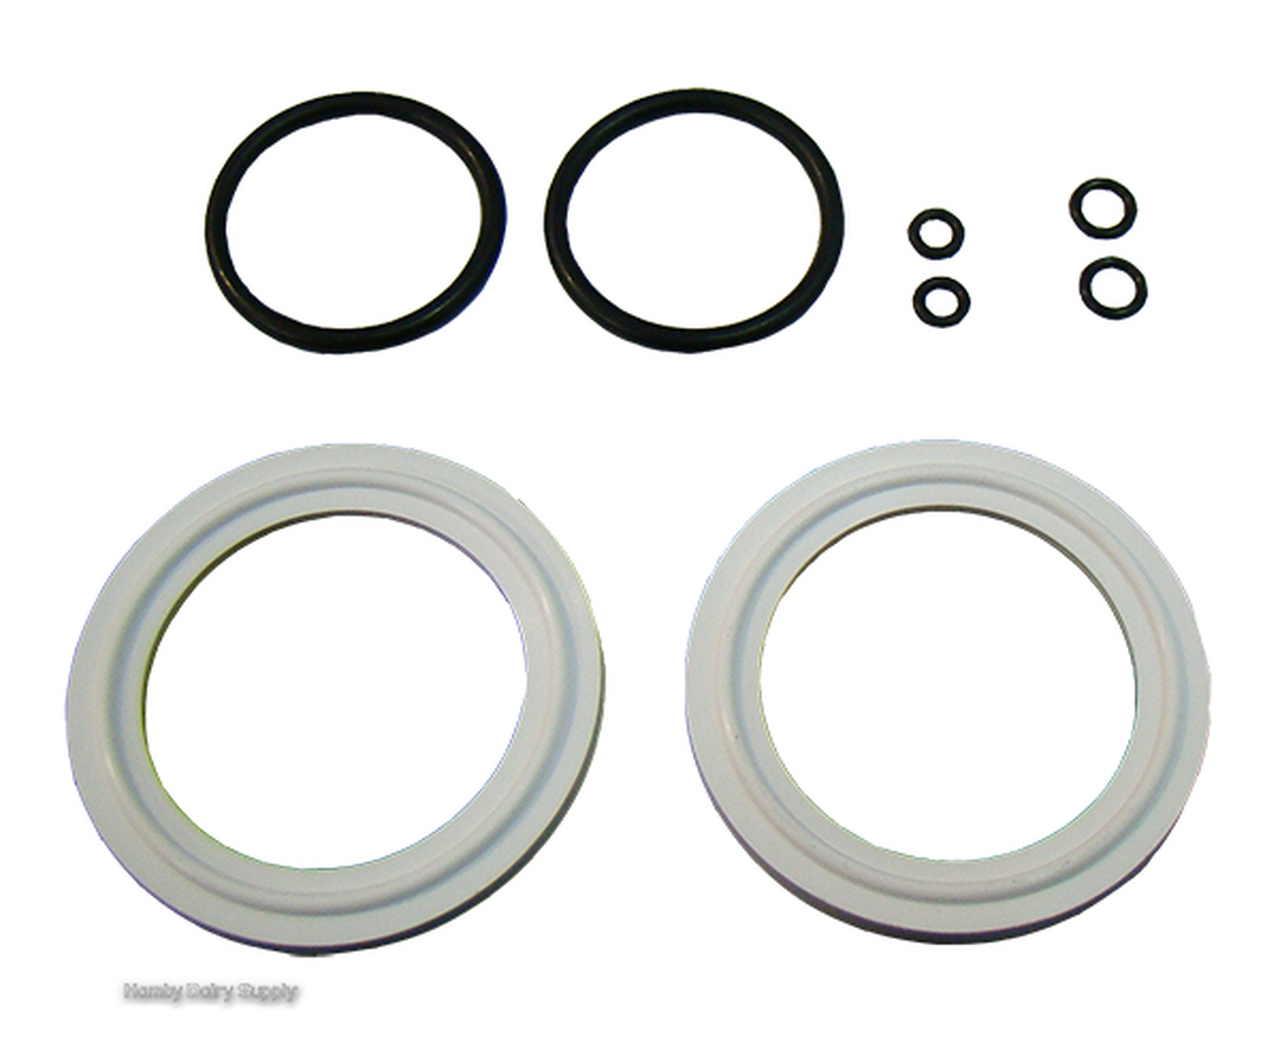 O-RING kit for Mueller Style 2 inch Milk Tank Valve